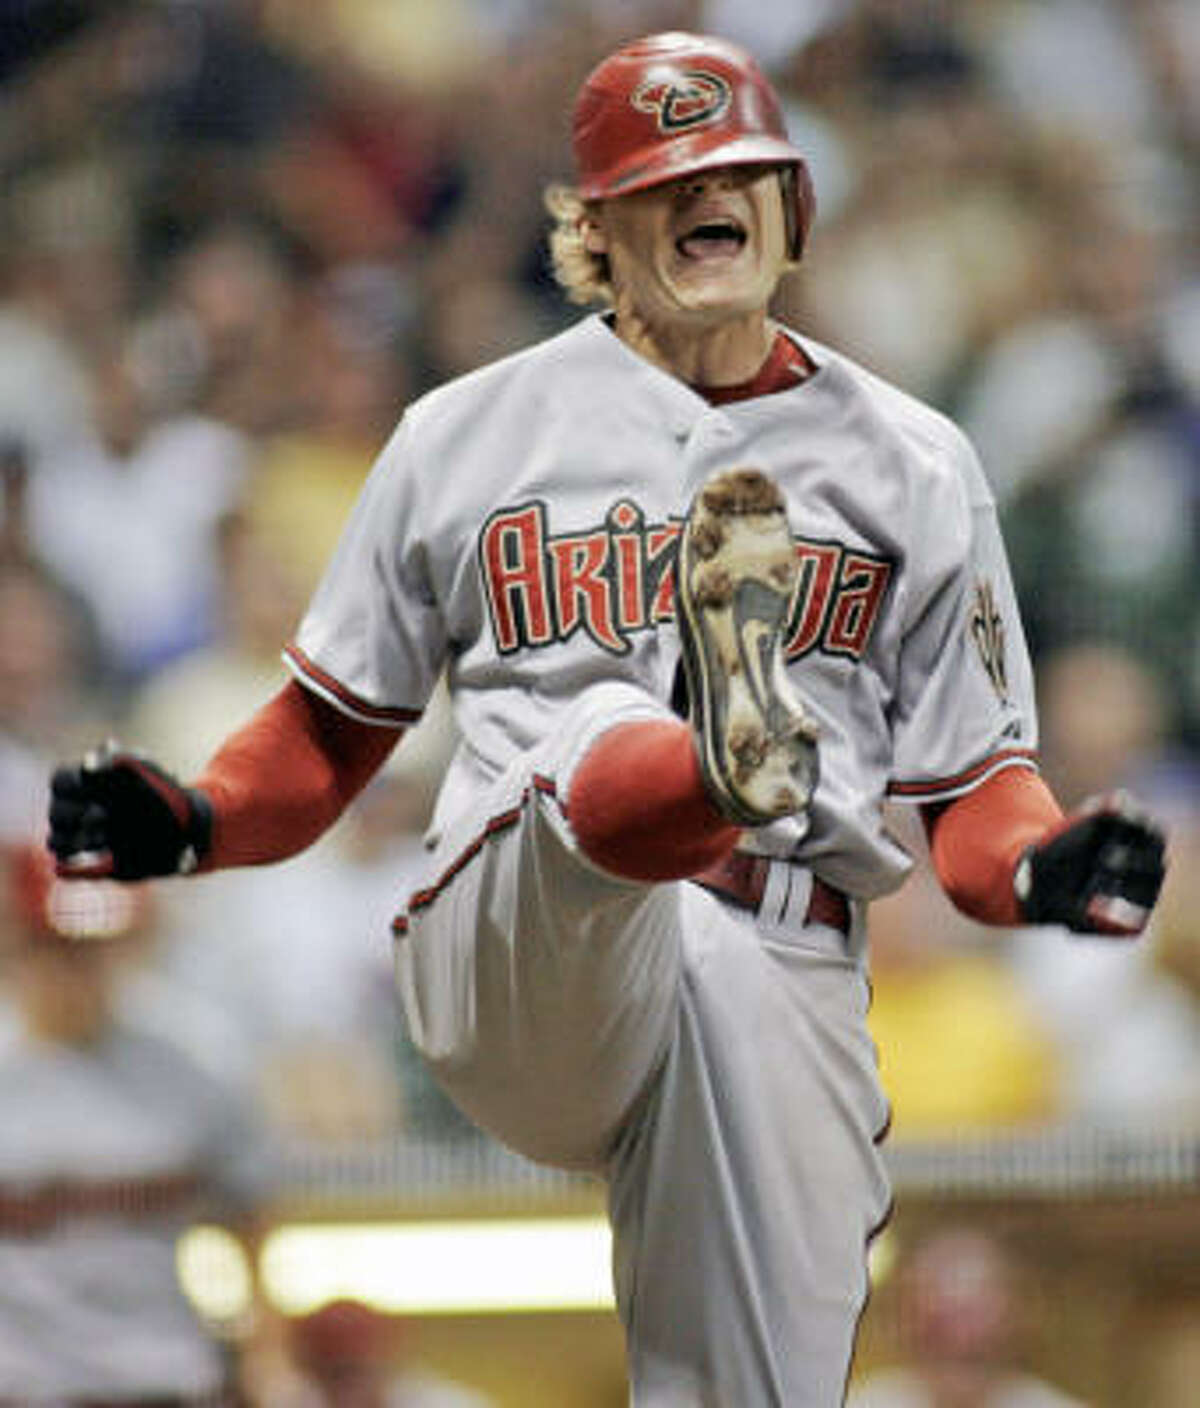 It looks like Eric Byrnes (shown after striking out against the Brewers last week) wouldn't stay with the Diamondbacks even if you dragged him to their offices kicking and screaming.